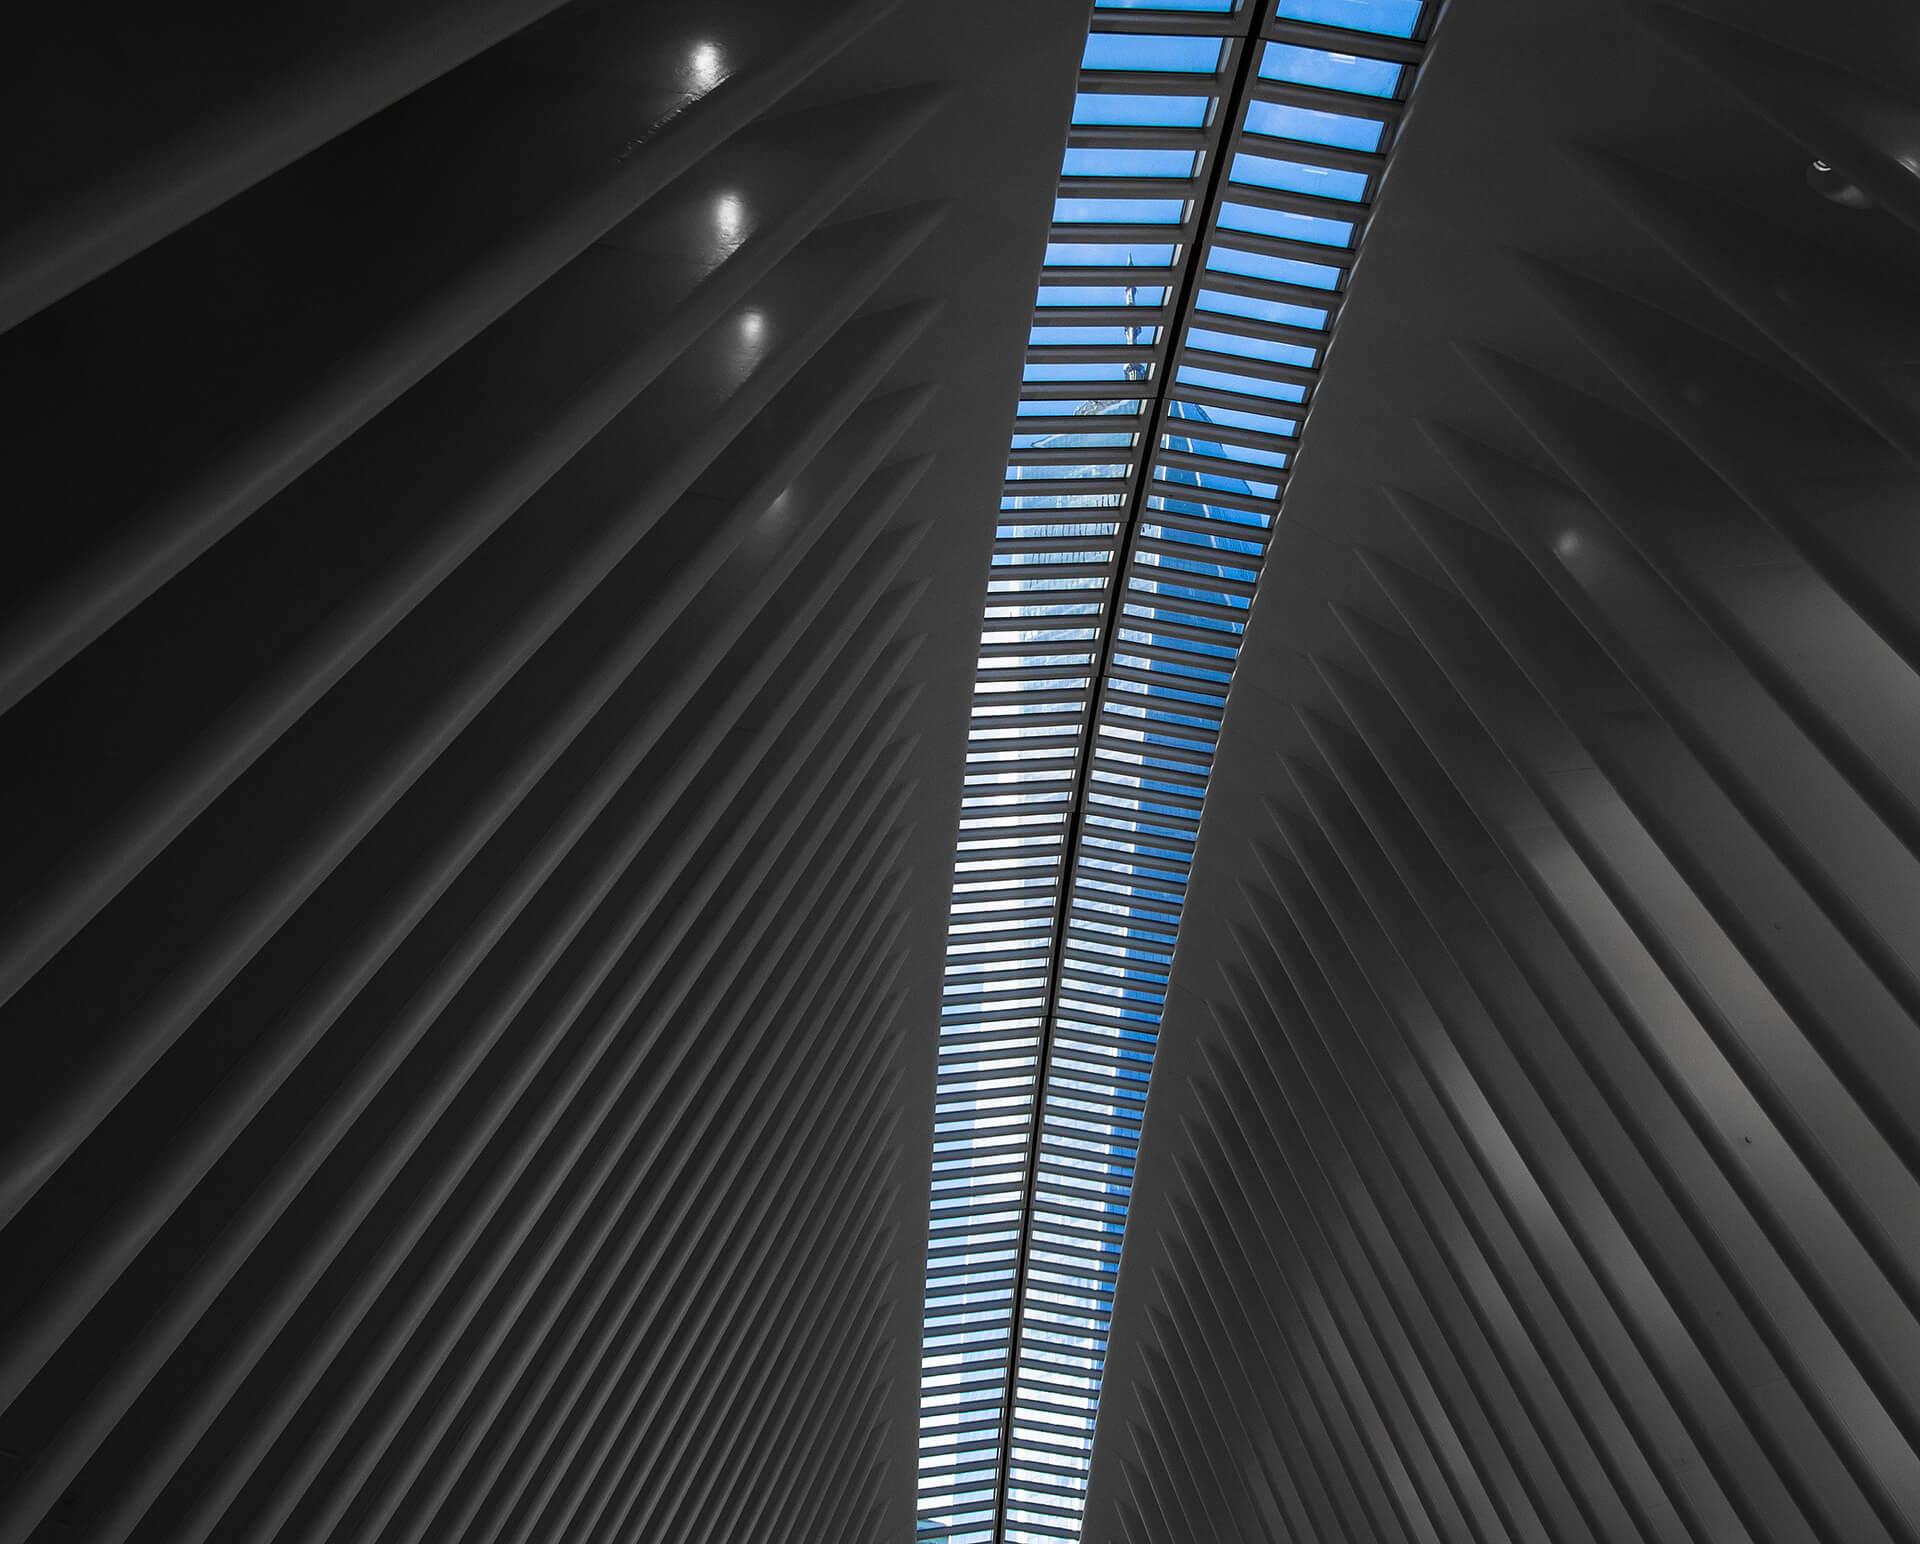 World Trade Centre Transportation Hub viewed through the ceiling window of the Oculus| Santiago Calatrava | STIRworld